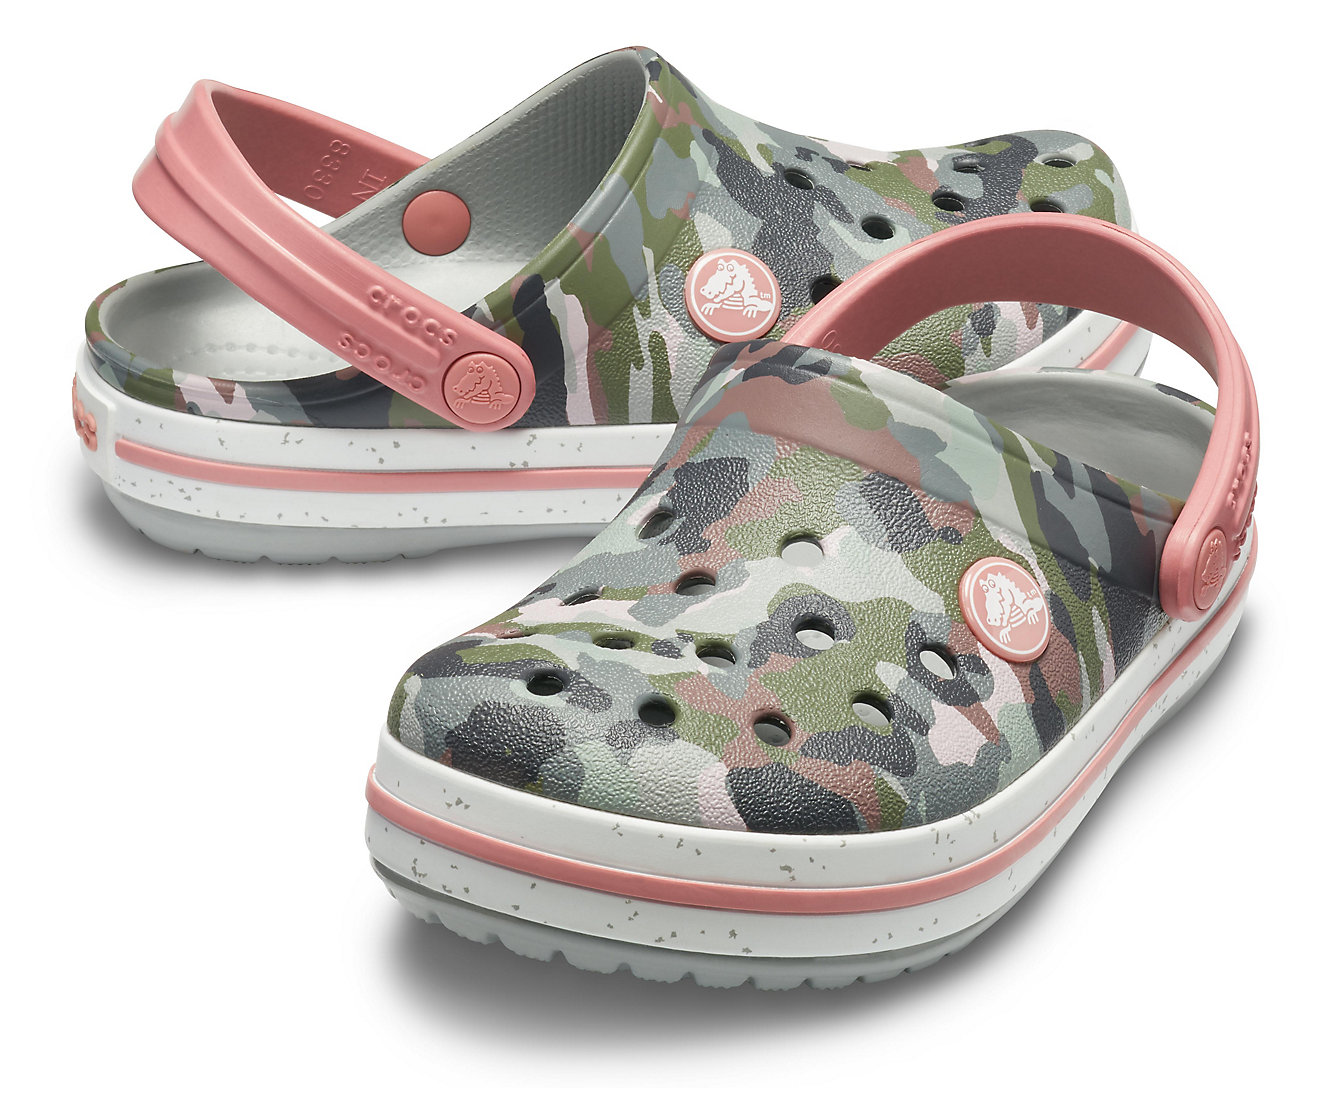 Crocs maskáčové pantofle Crocband Camo Spec Clog Camo/Light Grey